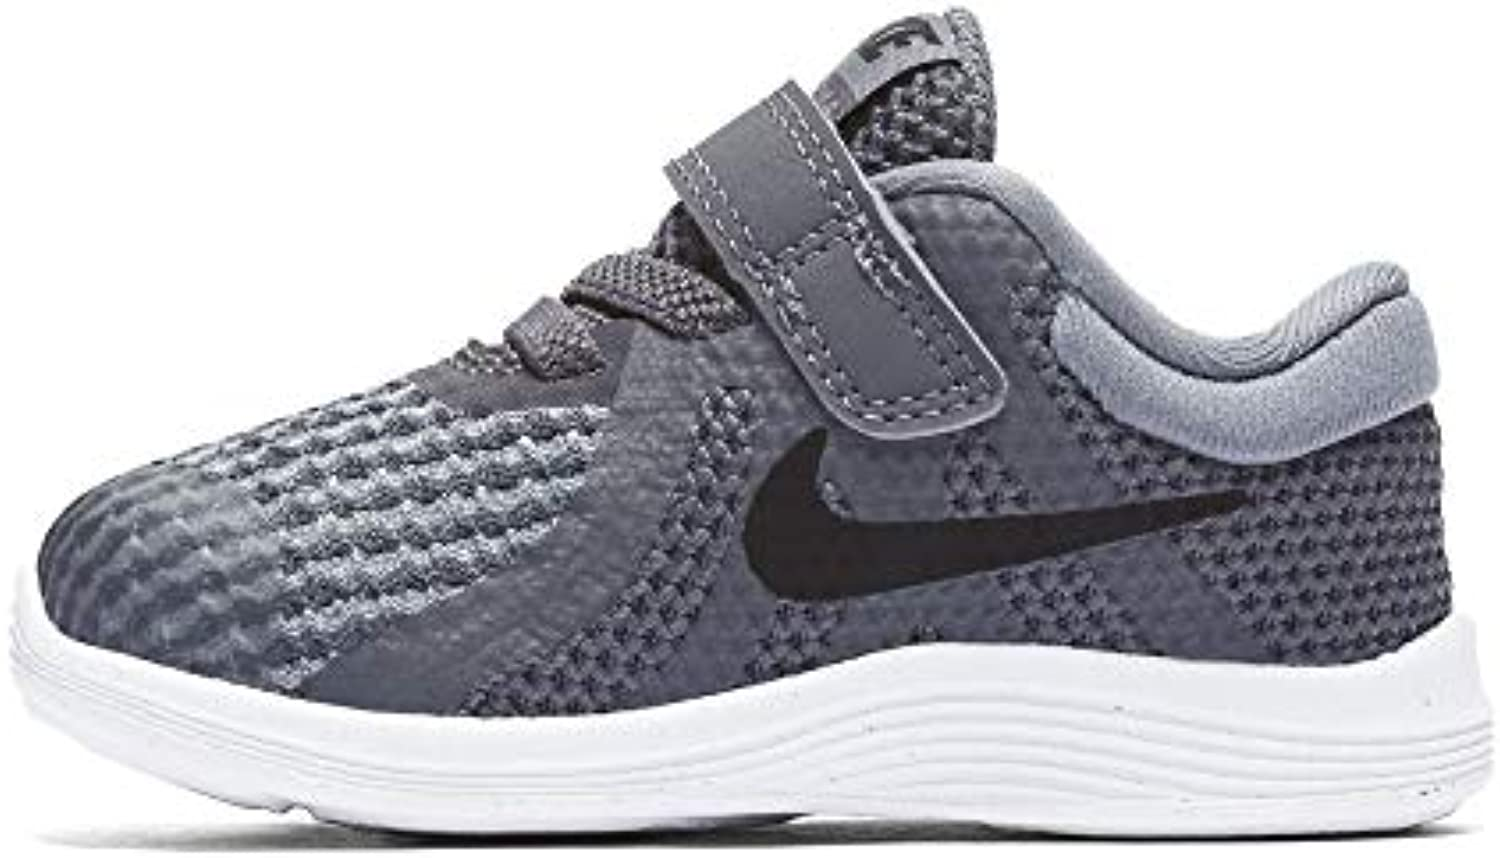 Men's/Women's NIKE Unisex Babies Revolution 4 (TDV) Slippers Special Special Special price Lush design Outstanding style HN33290 760c73